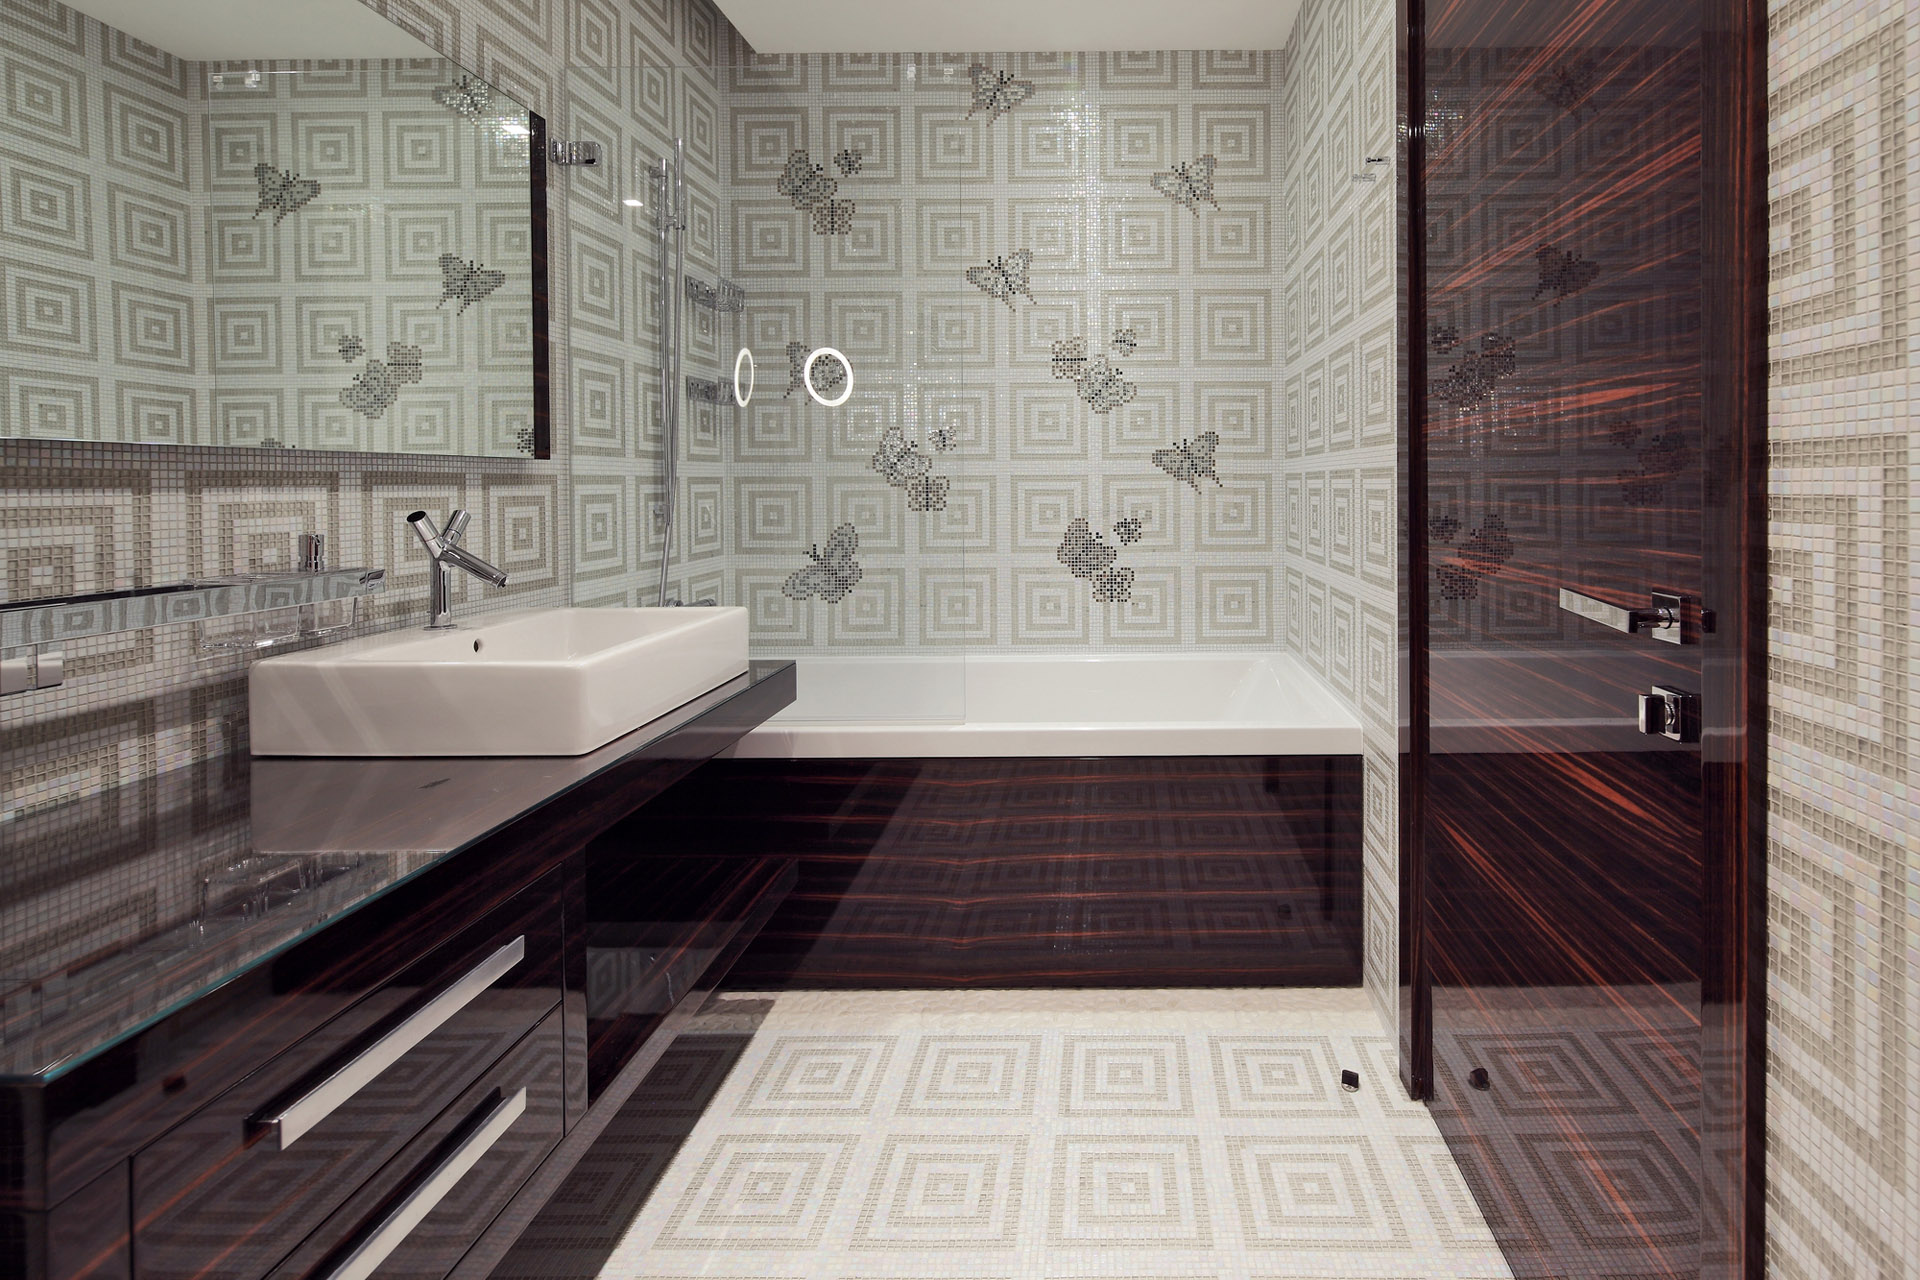 Contemporary bathroom wallpaper home design ideas design for Bathroom wallpaper designs